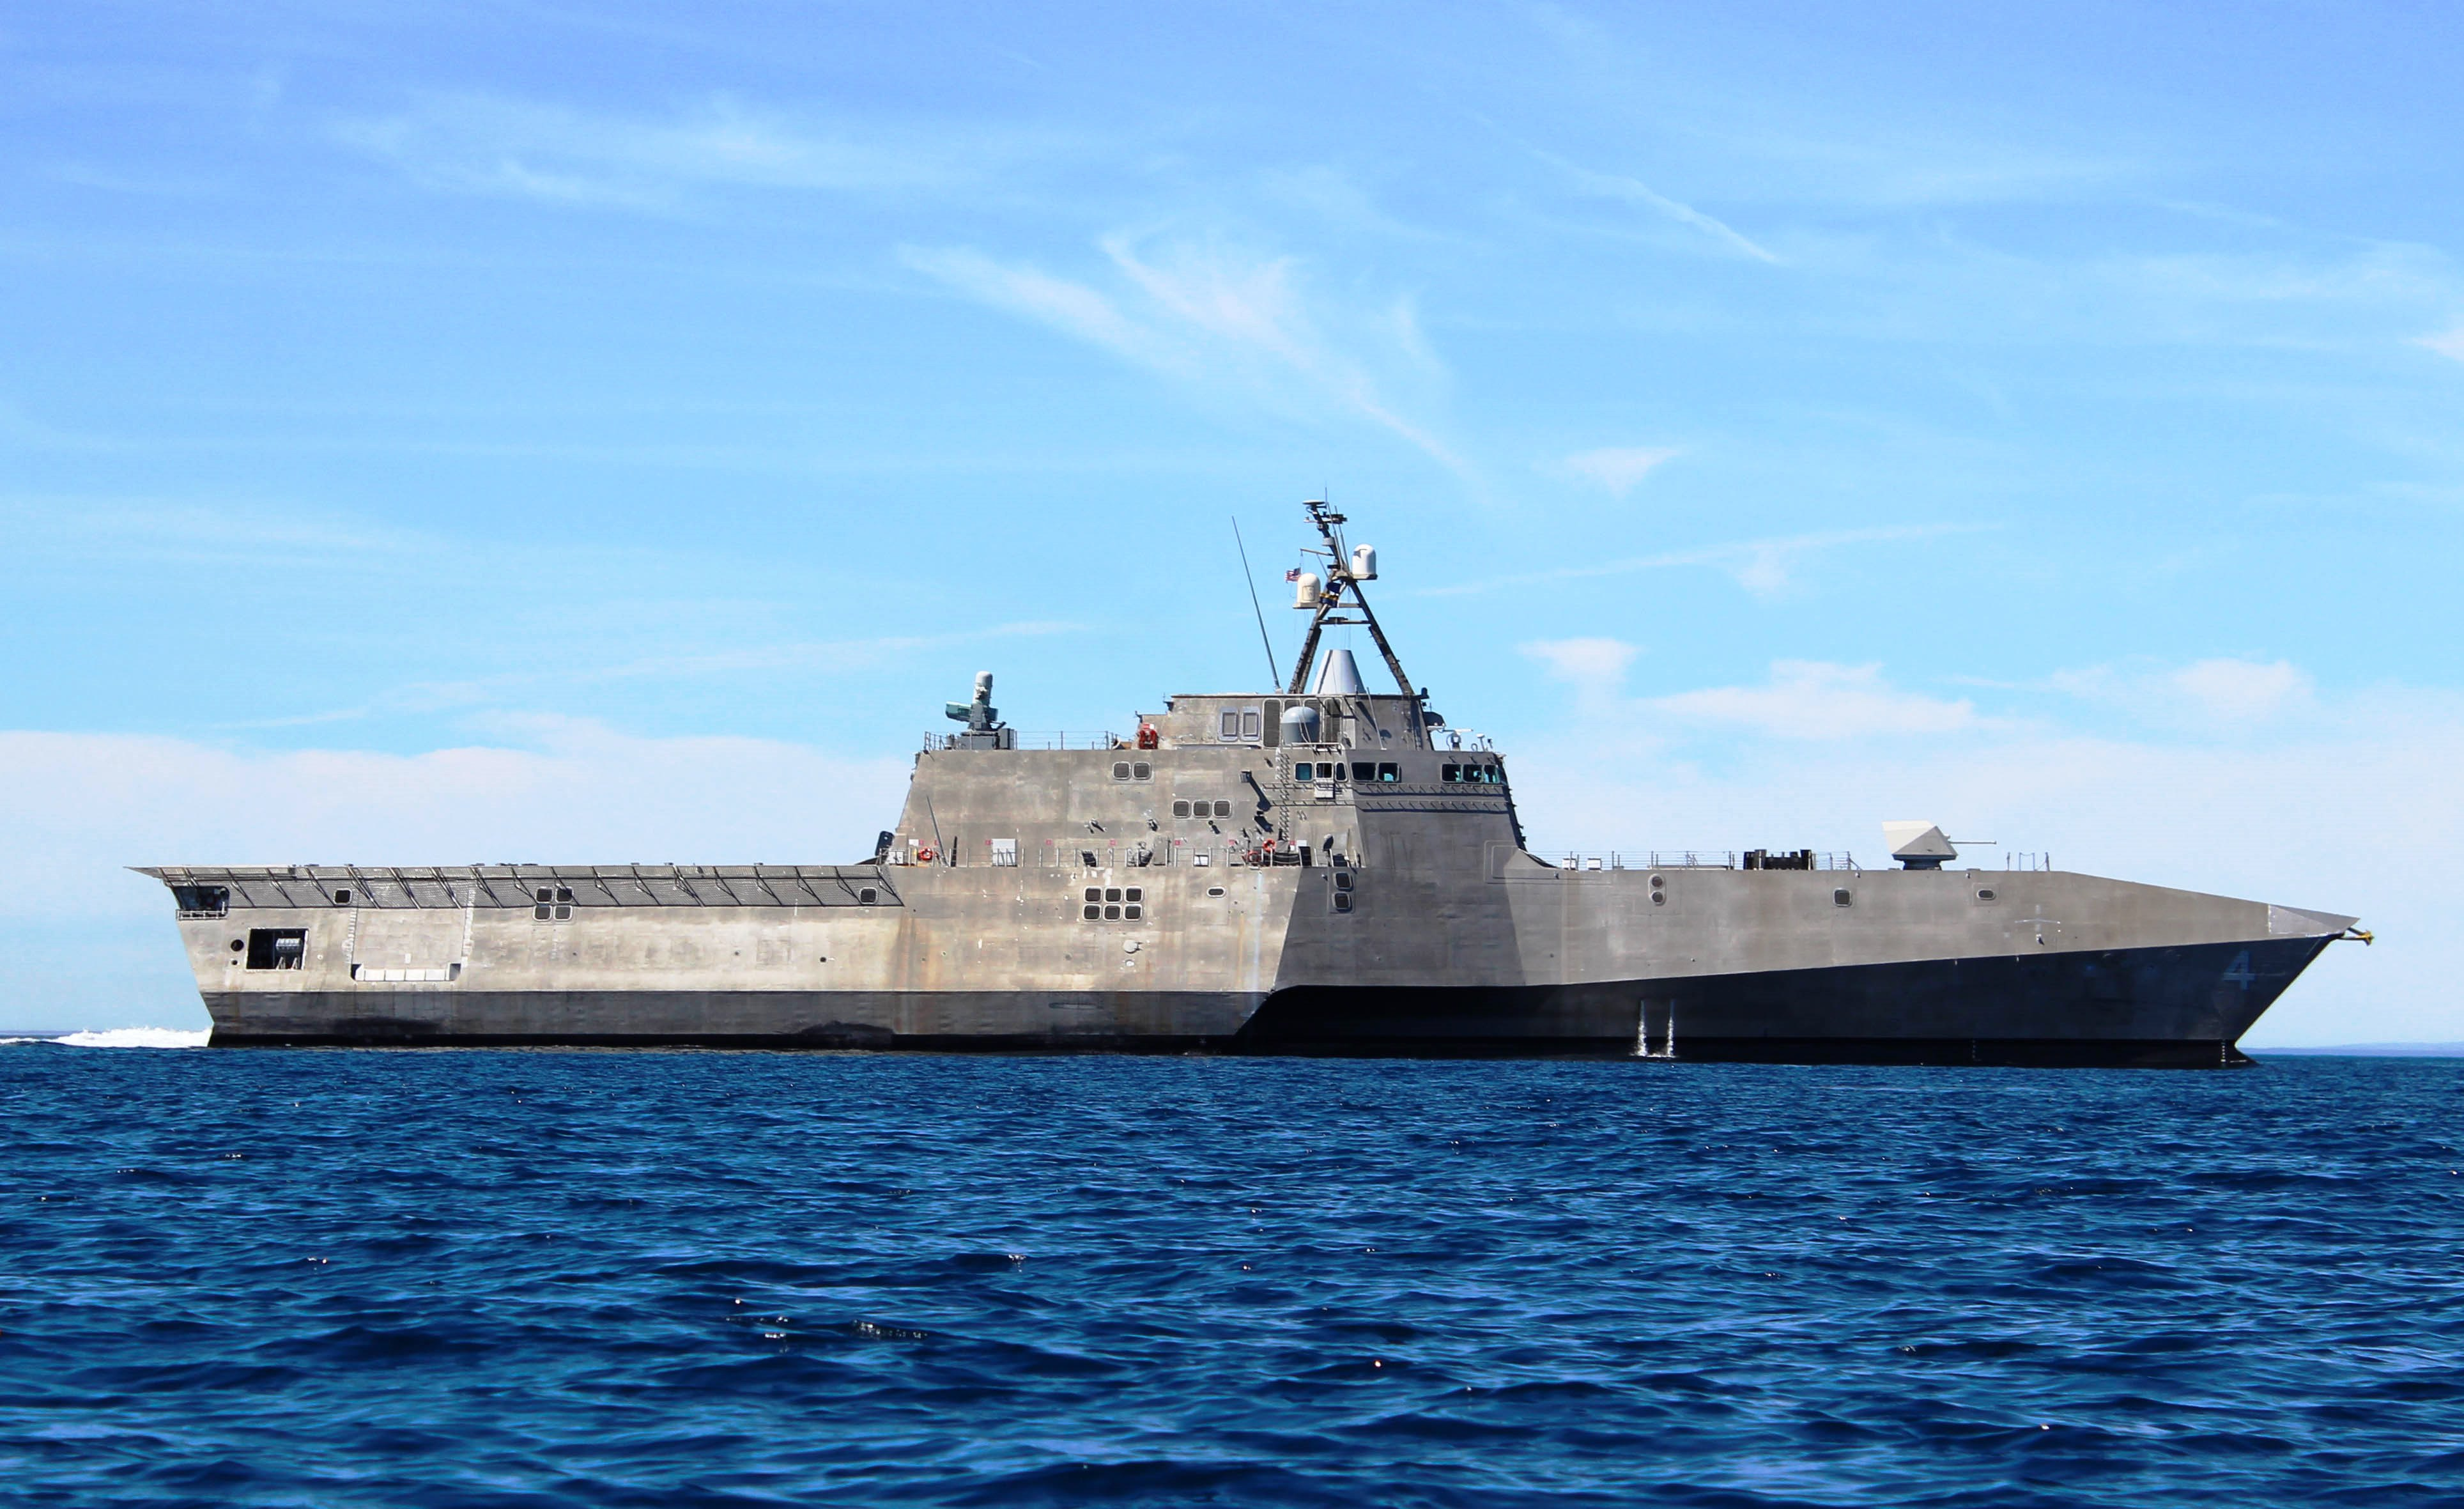 The USS Coronado made an appearance near Dana Point Sunday. The littoral combat ship, designed for coastline operations, is under two commands, one of which is headed by Dana Point native, Cmdr. John Kochendorfer. Photo by Shannon O'Neill